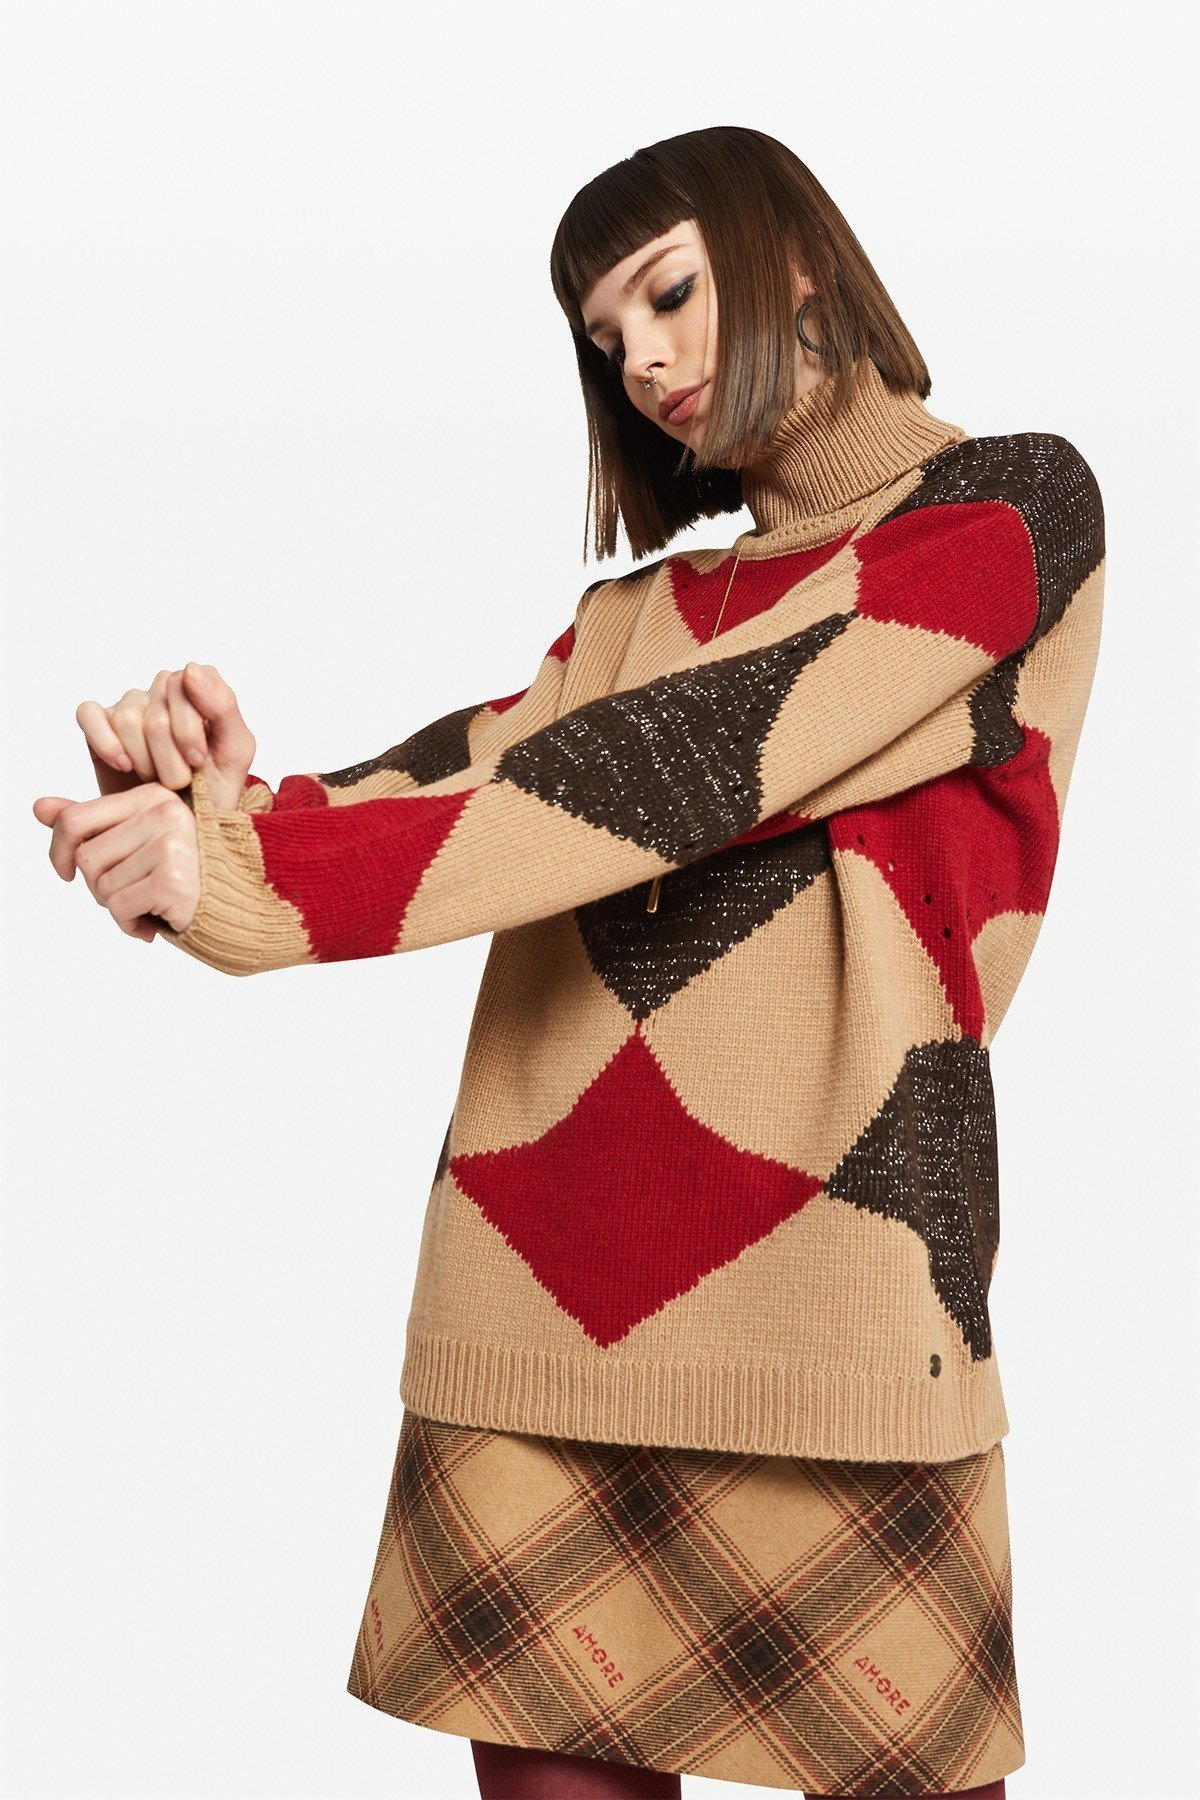 Polo-necked pullover with rhombuses